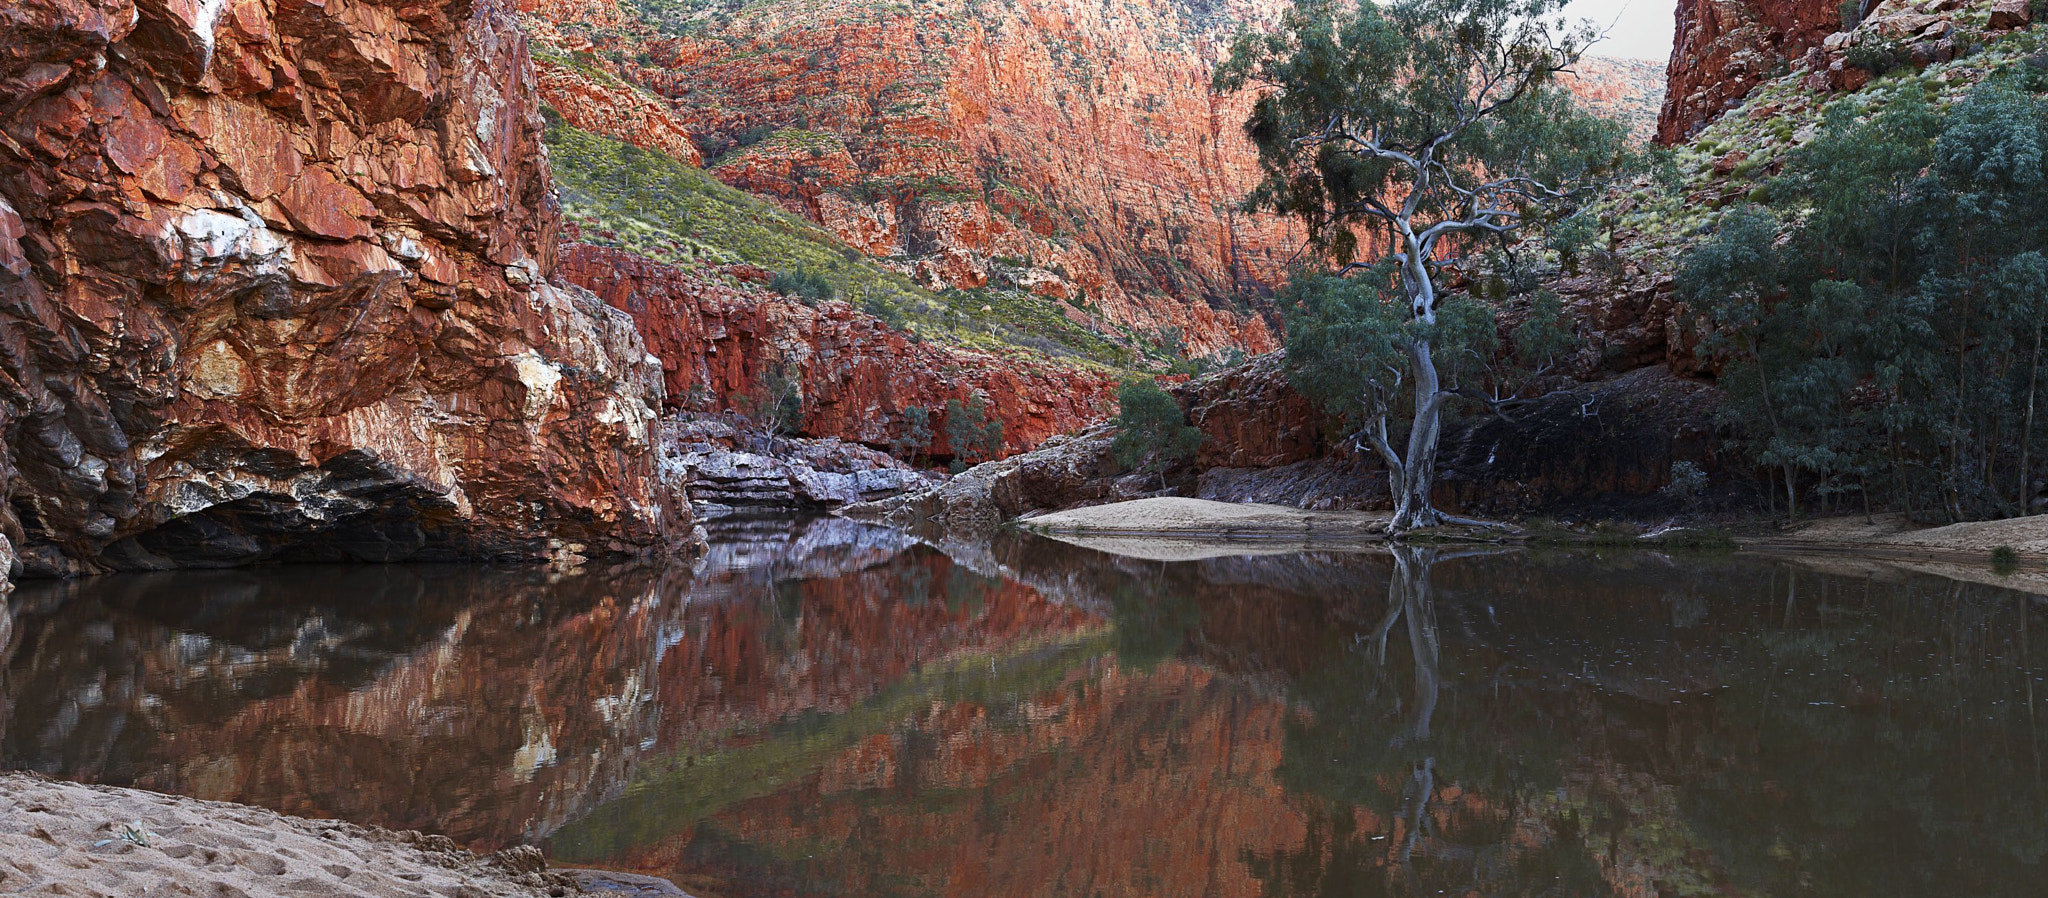 Photograph Gorge - Australia by Kevin Raber on 500px